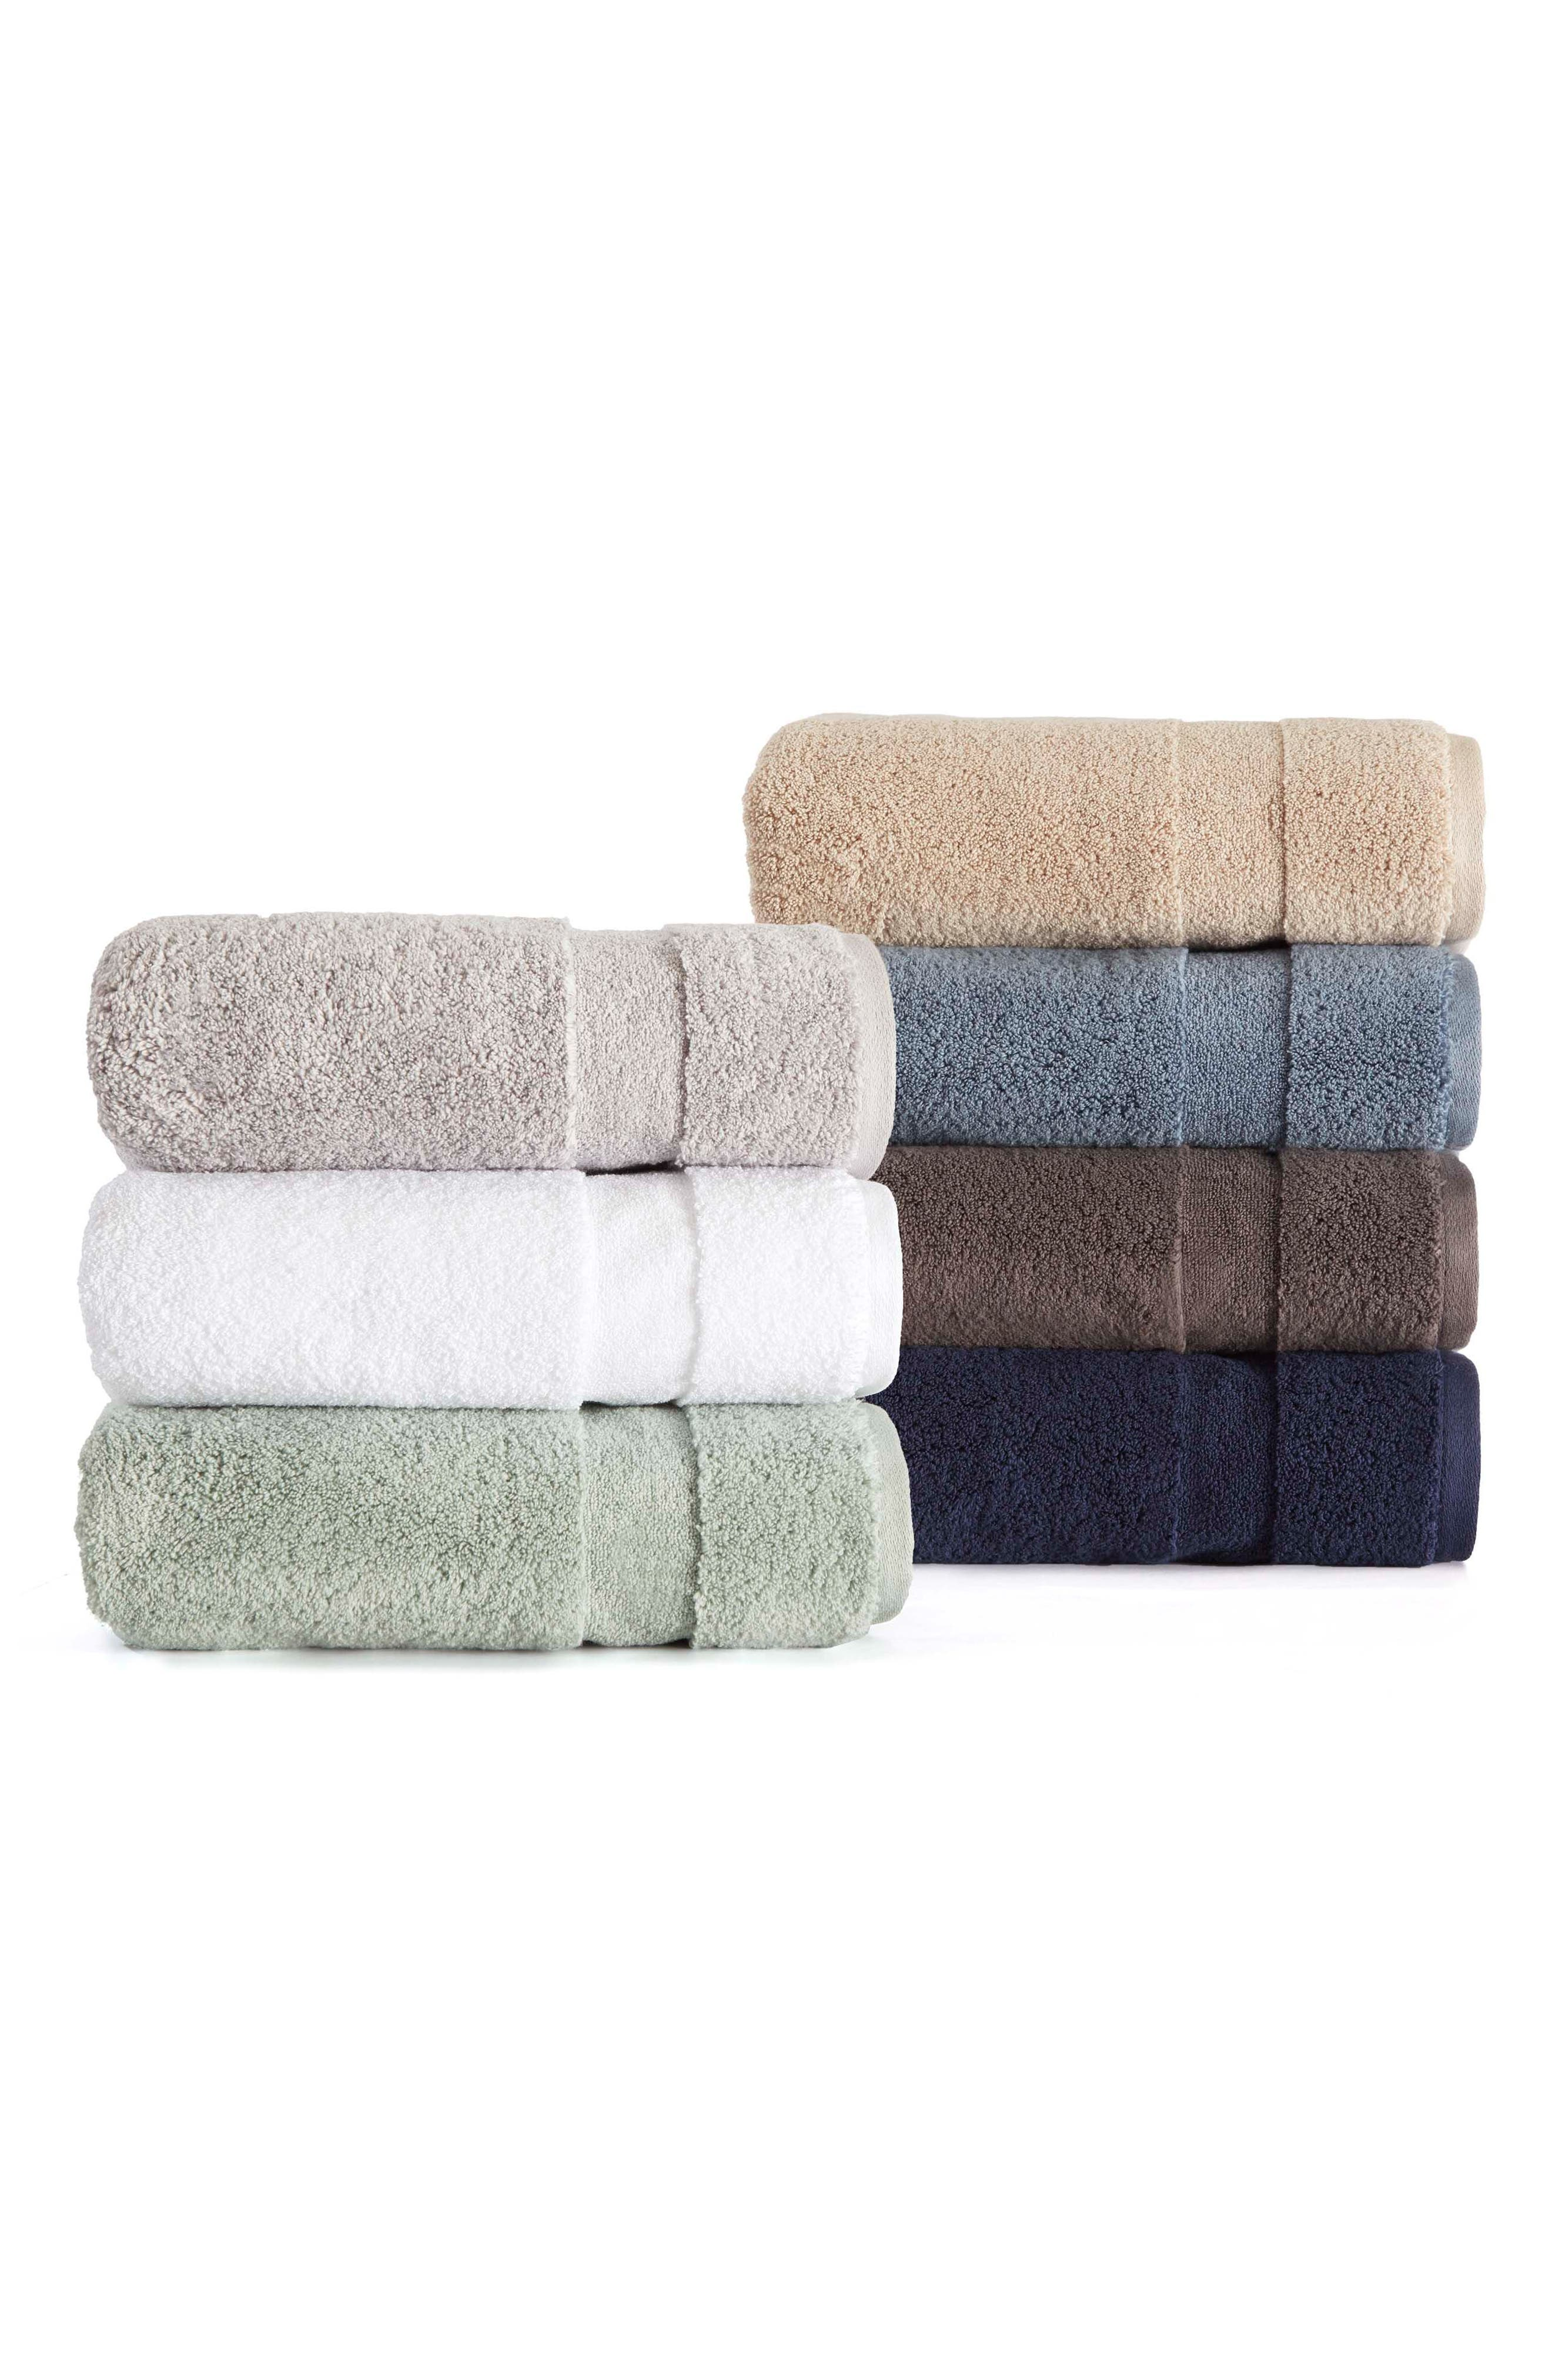 Kindness Bath Towel, Hand Towel & Washcloth Set,                             Alternate thumbnail 2, color,                             CHARCOAL